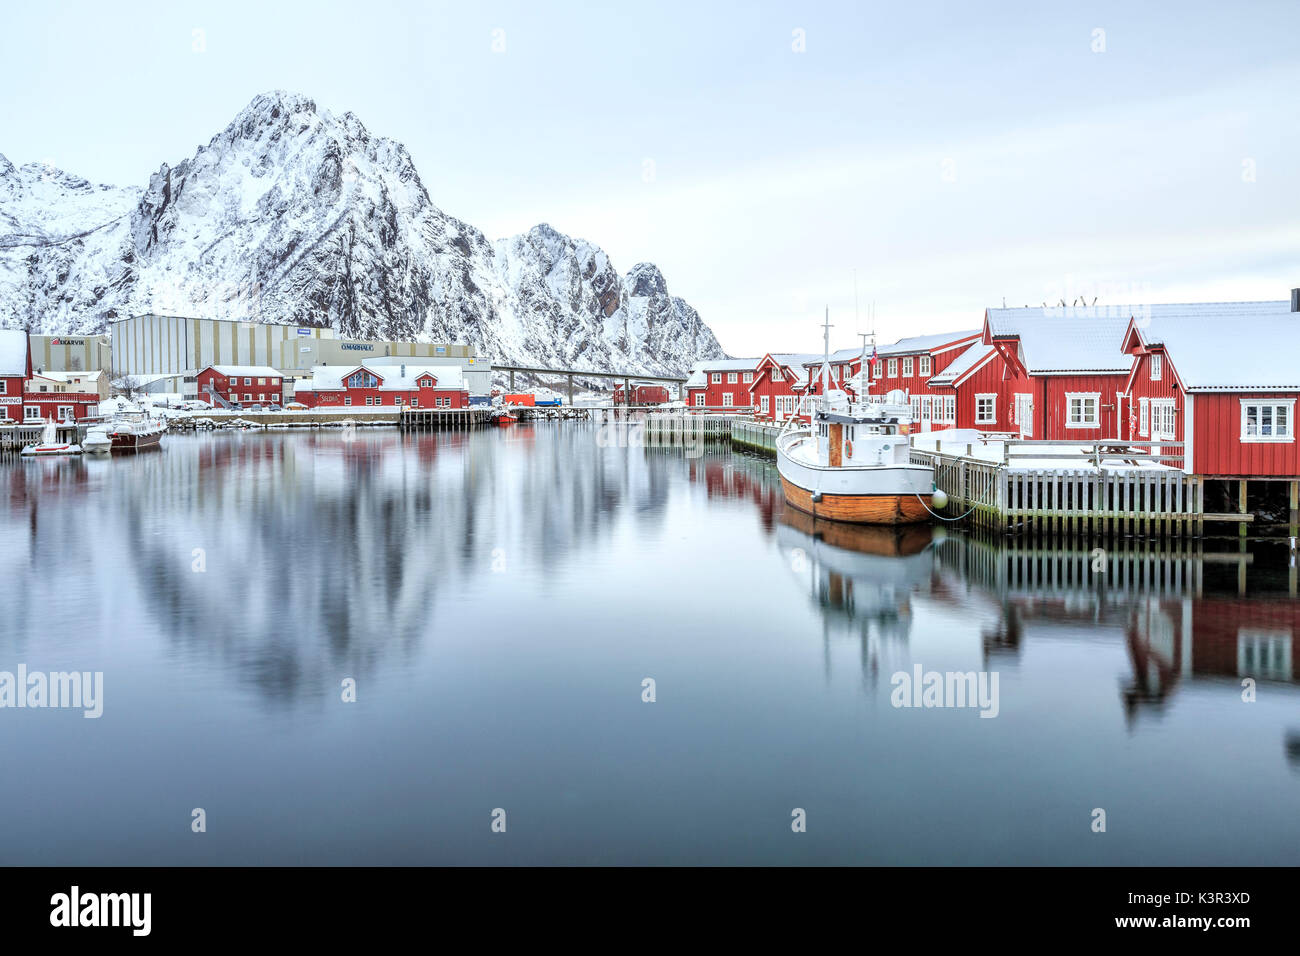 Port of Svollvaer with its characteristic houses on stilts. Lofoten Islands. Norway. Europe - Stock Image